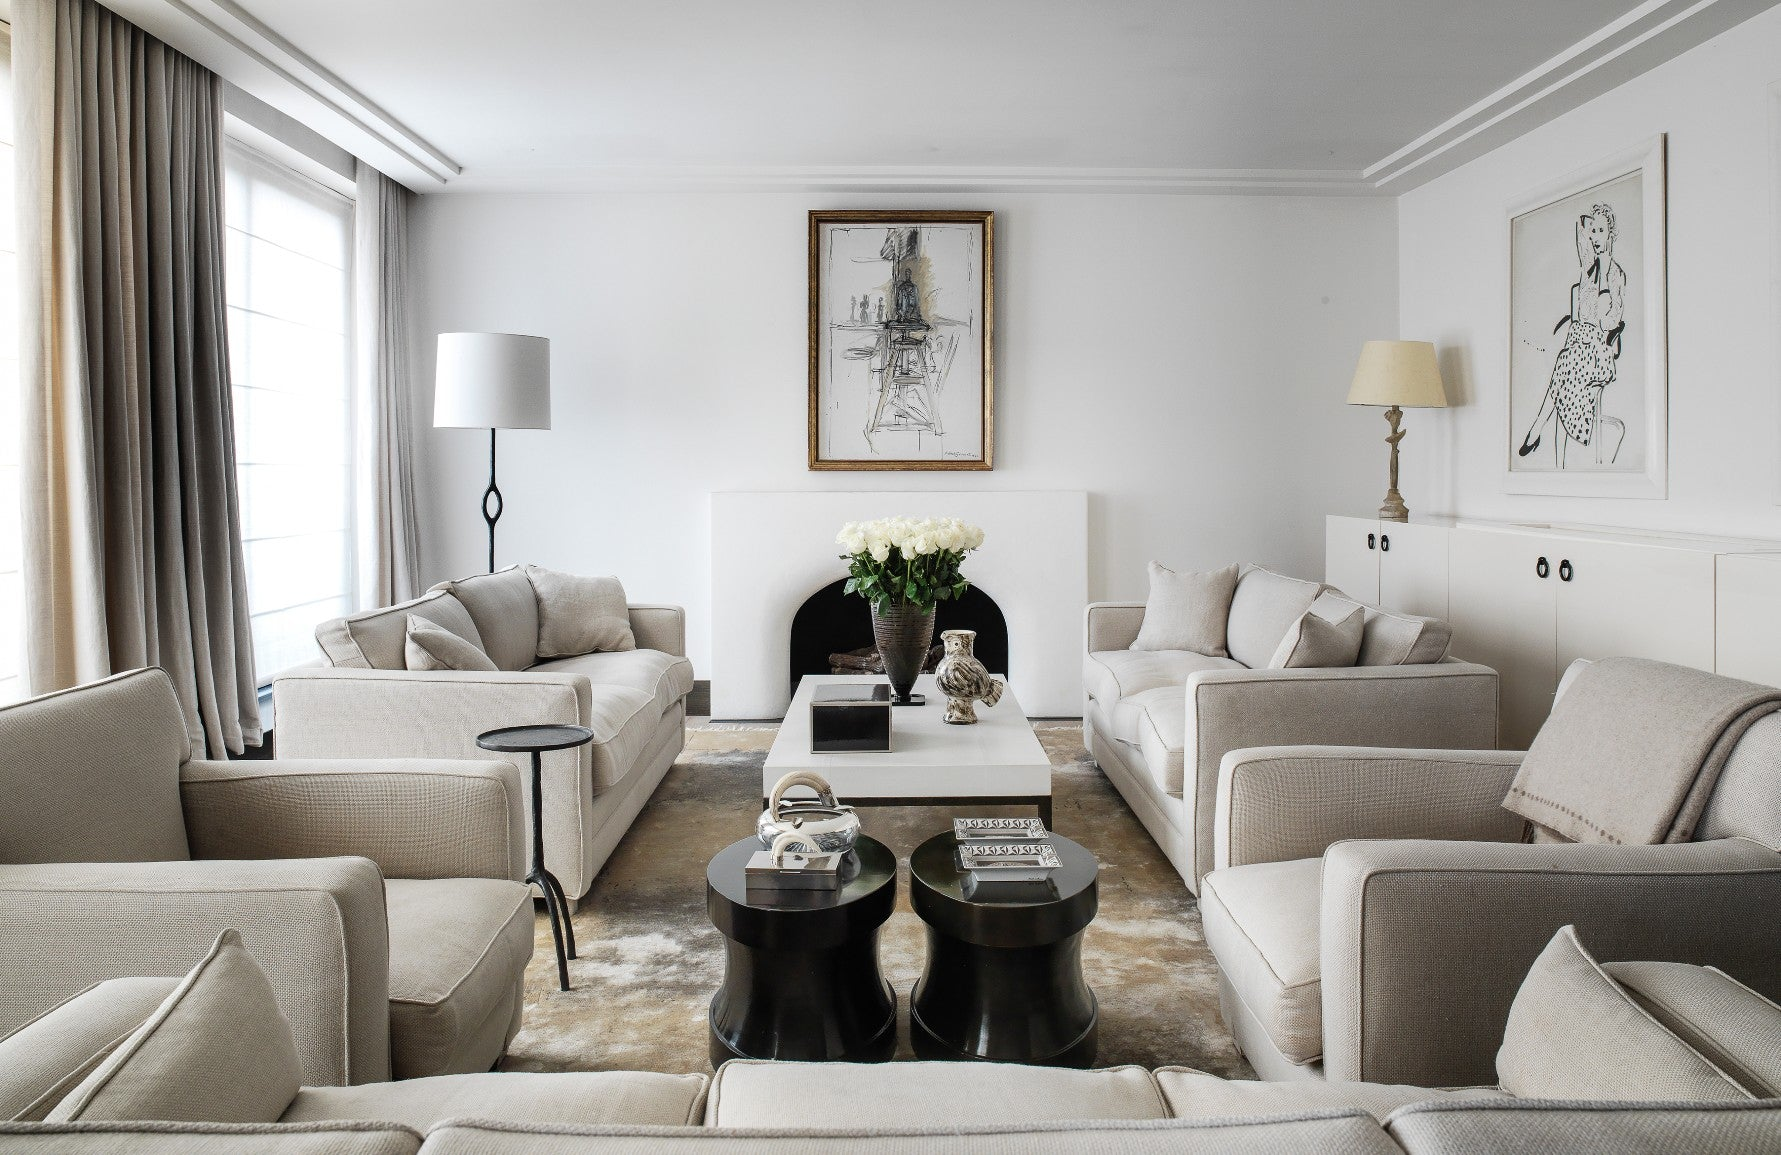 Neutral Living Room – Gilles & Boissier –  LuxDeco.com Style Guide